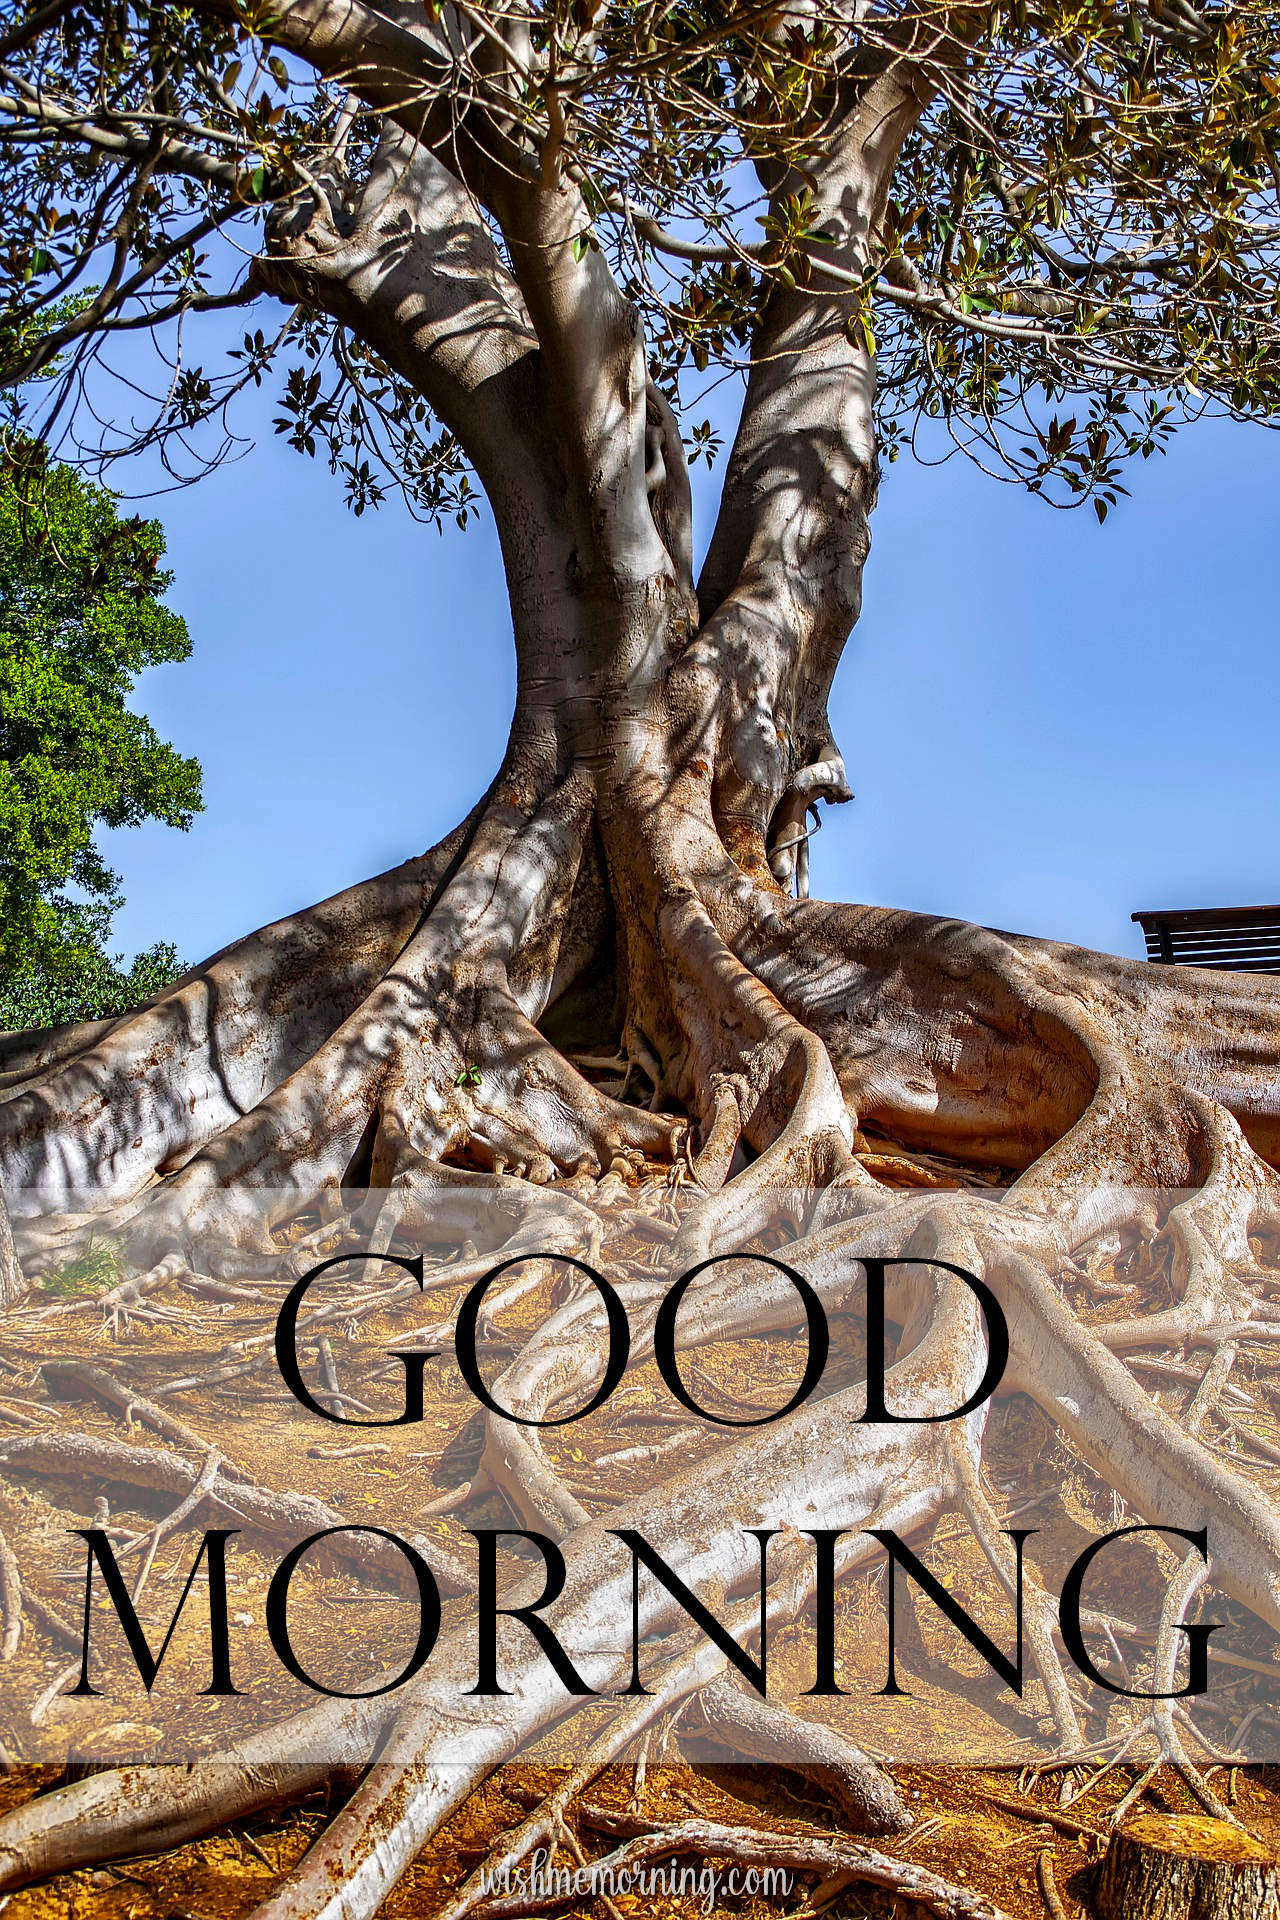 Beautiful Trees Woods Nature Images Wishes wishmemorning.com 14